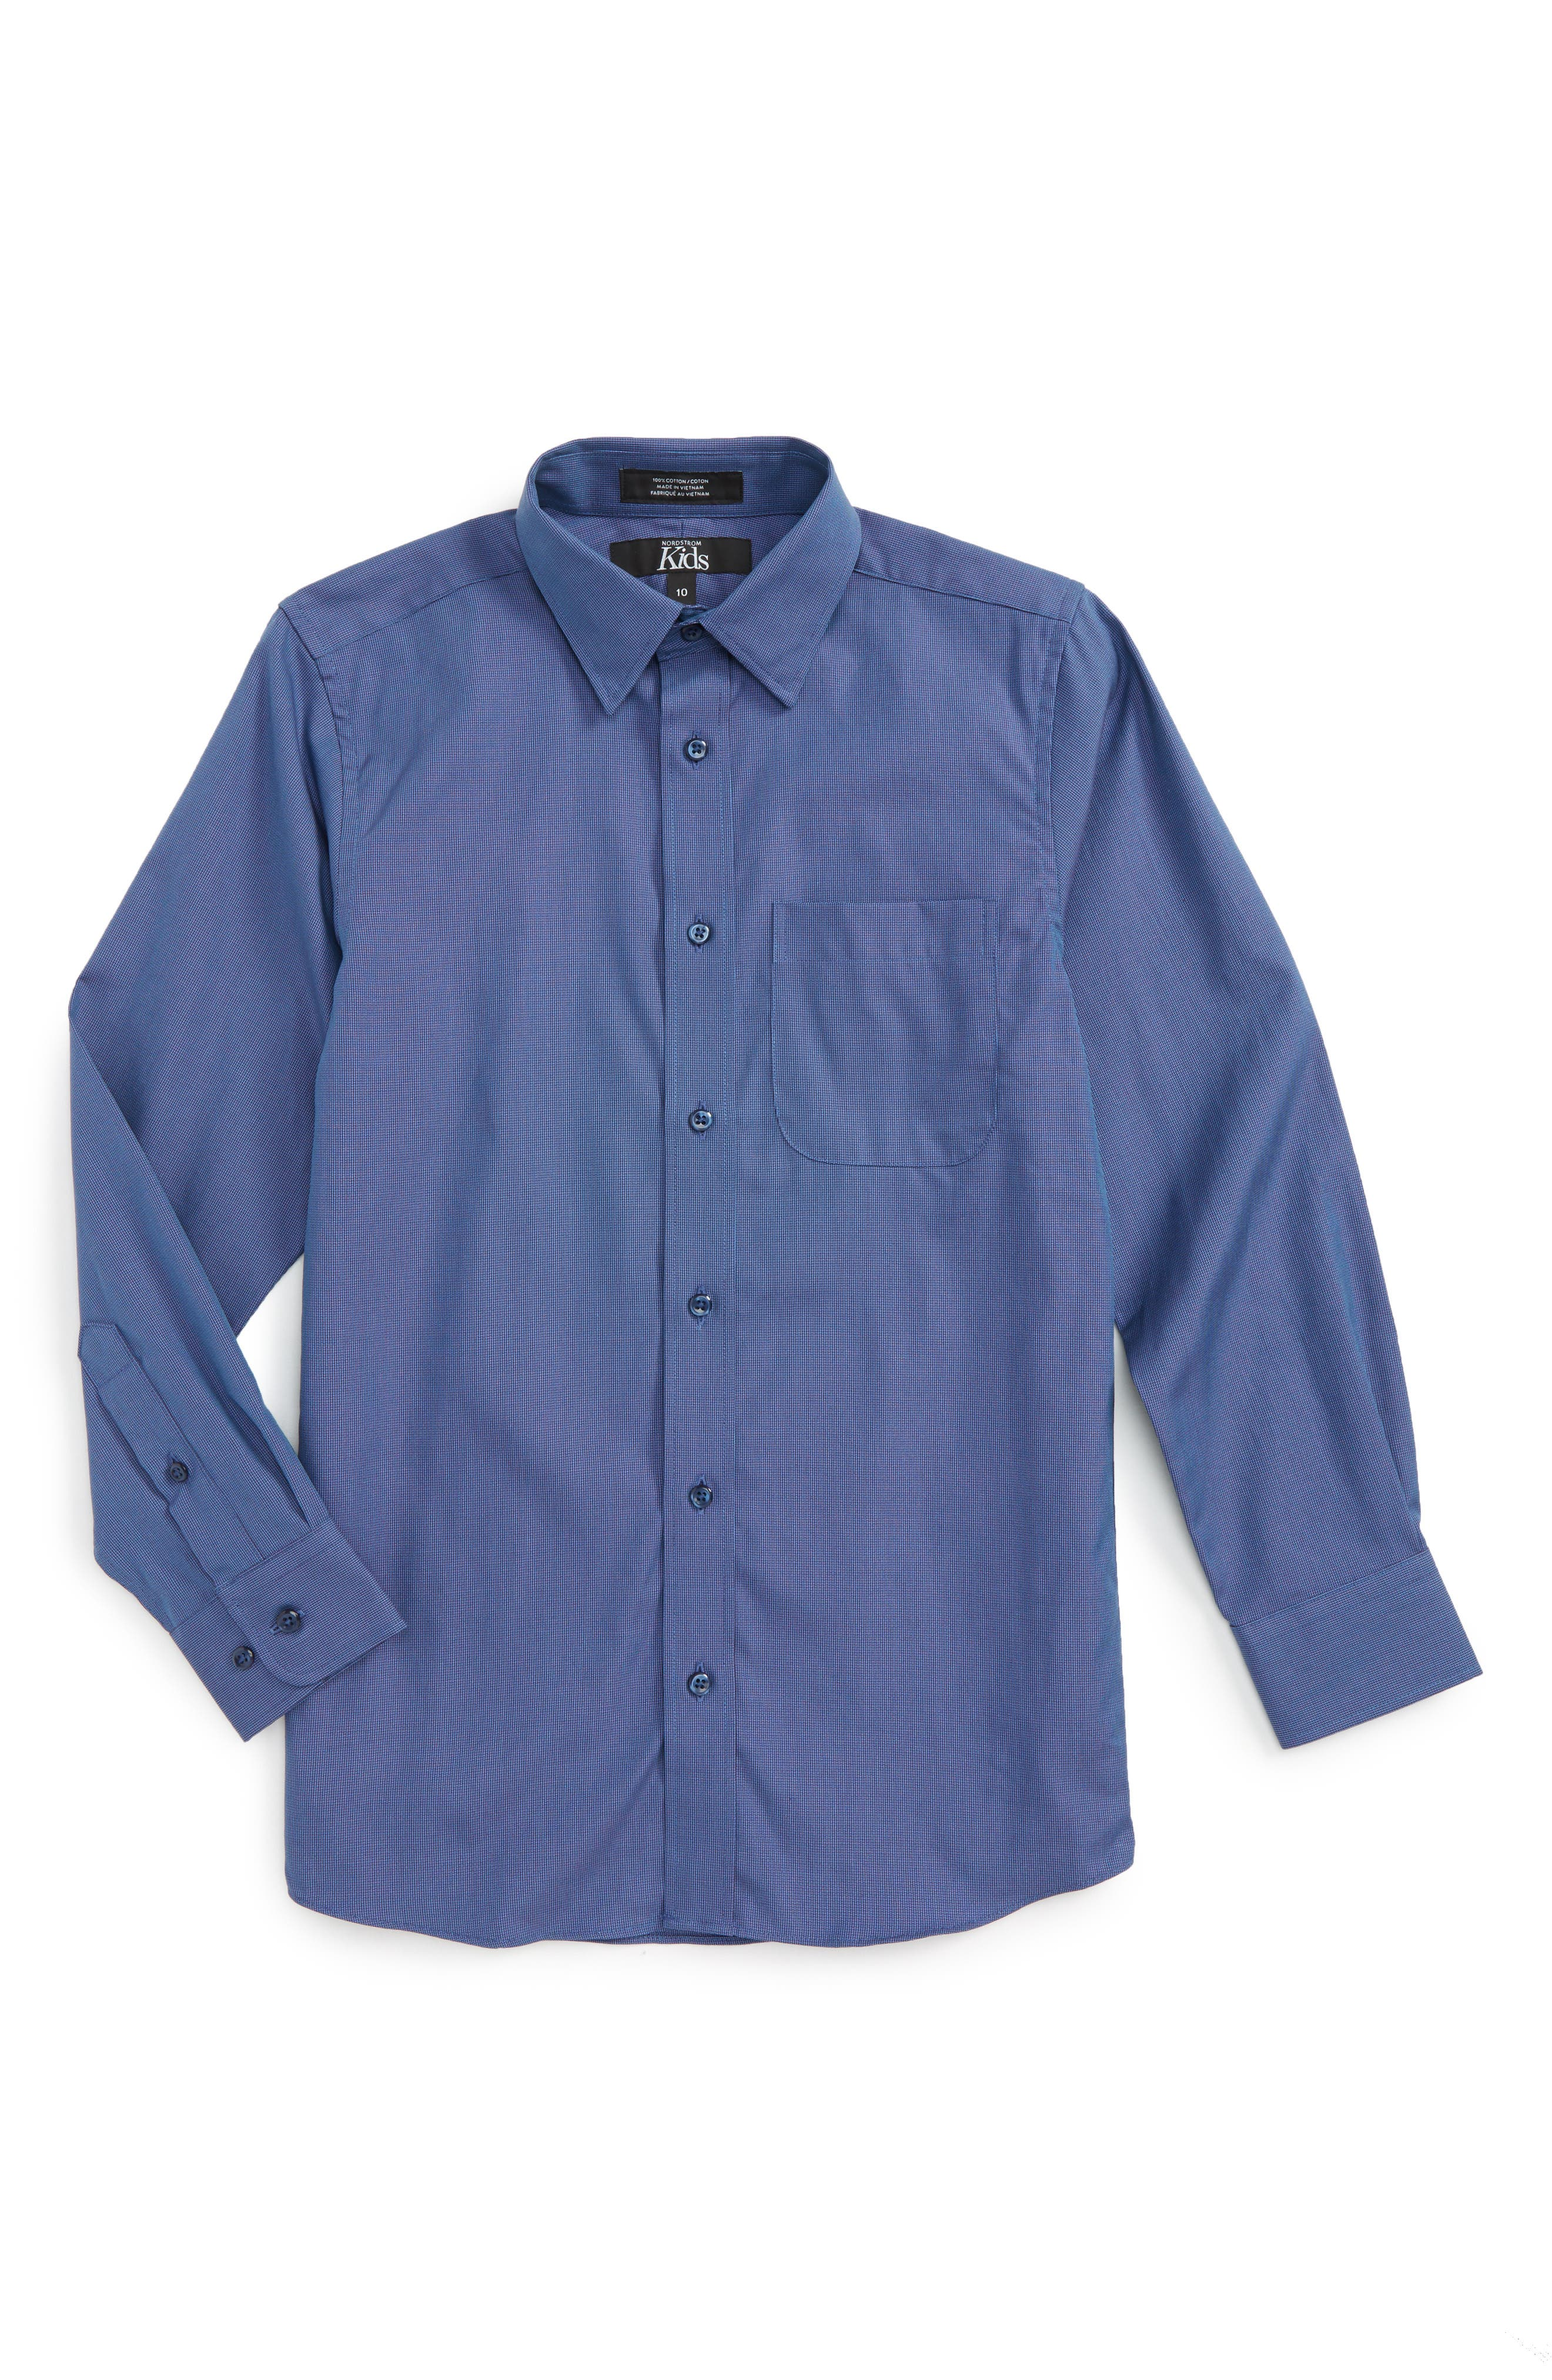 Nordstrom Patriot Cotton Poplin Dress Shirt (Big Boys)